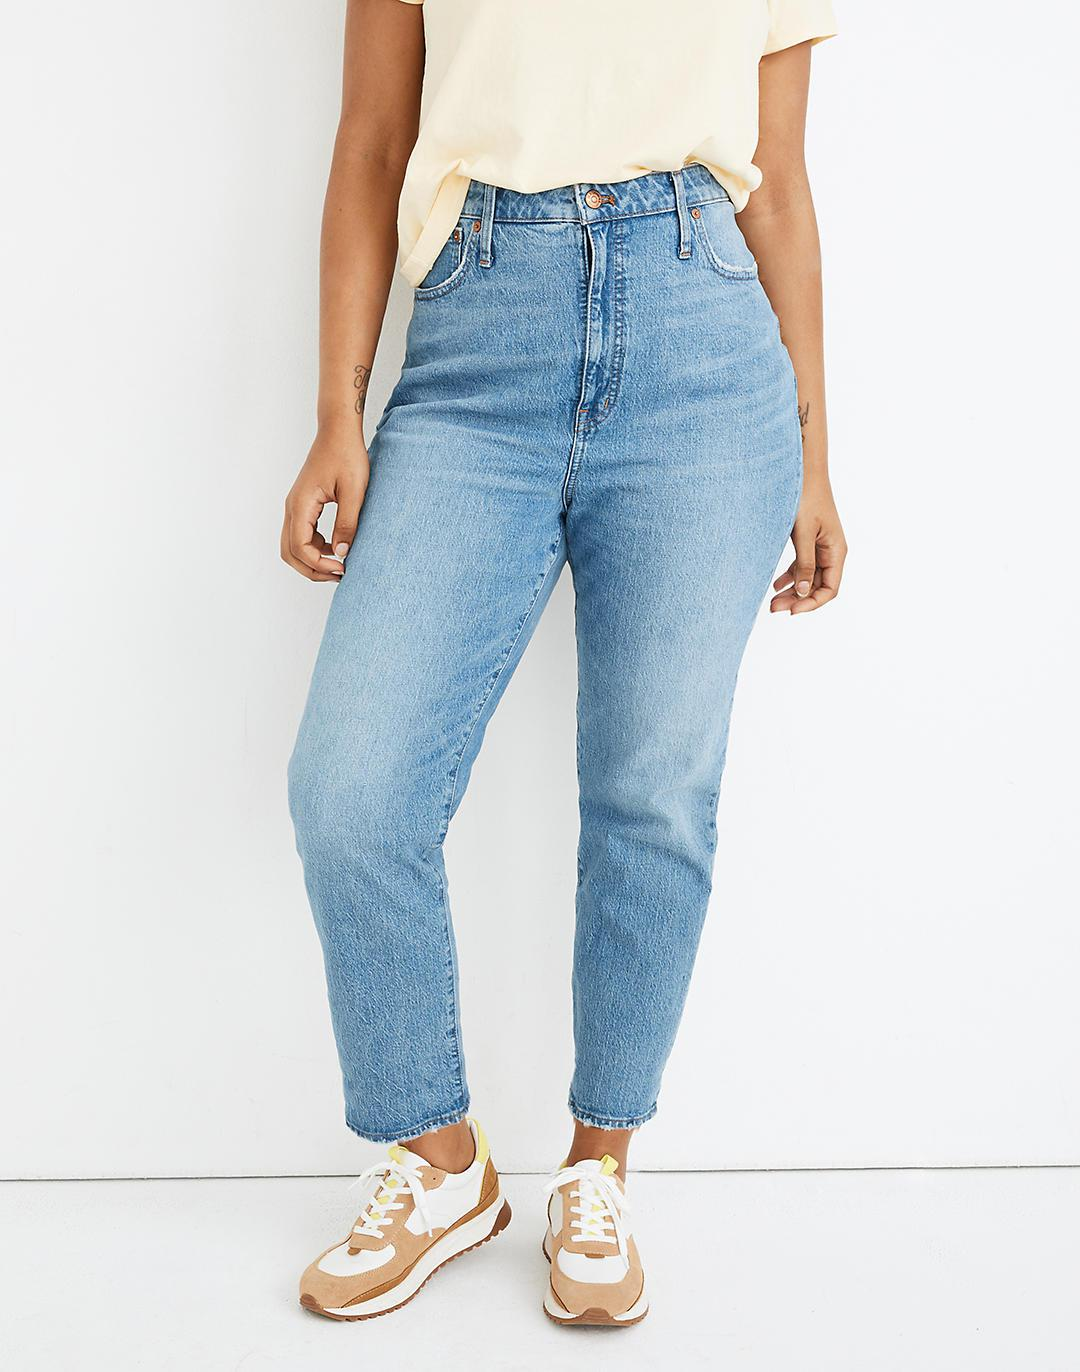 Petite Classic Straight Jeans in Nearwood Wash 3